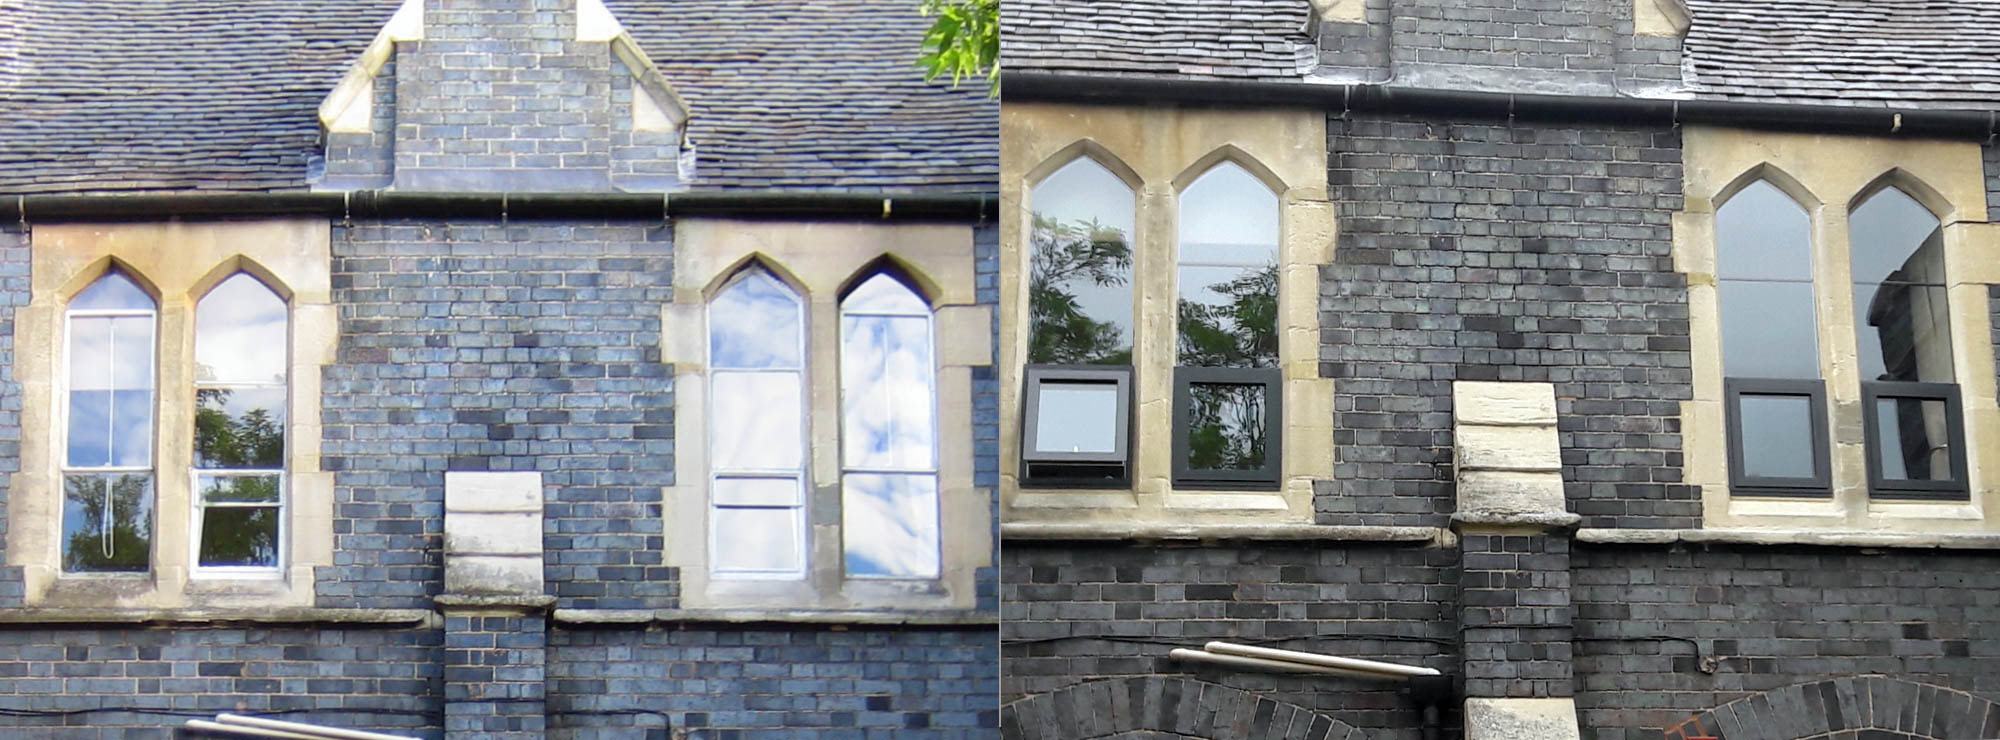 <strong>Period property in Shropshire.</strong>Replacement of steel windows with aluminium and single stone glazed lights with double glazed units.